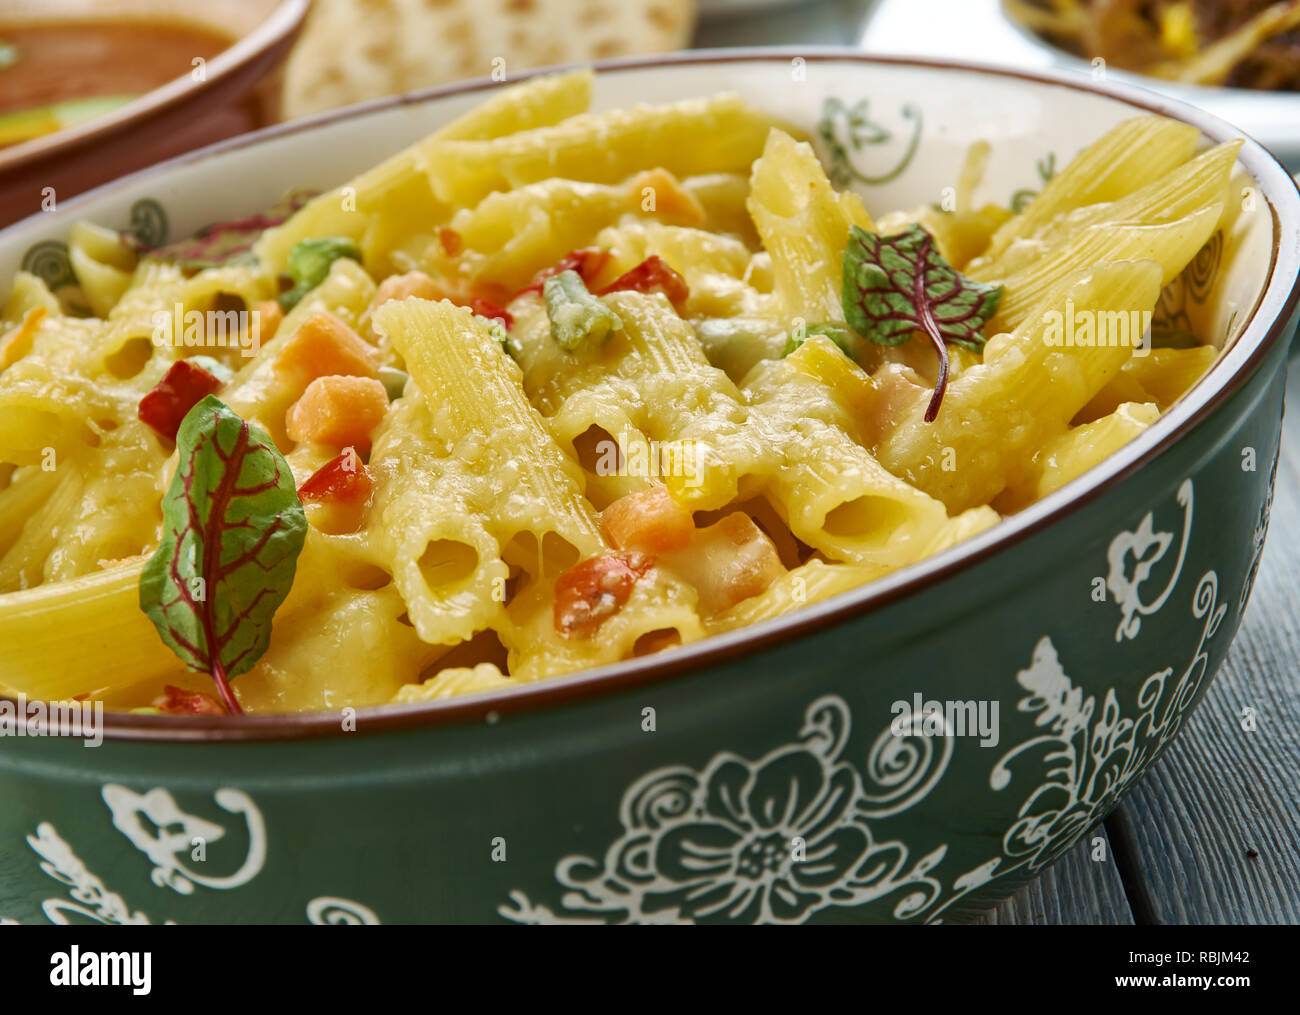 Cheesy Tex Mex Huhn penne, Tex-Mex-Küche, Traditionelle ...